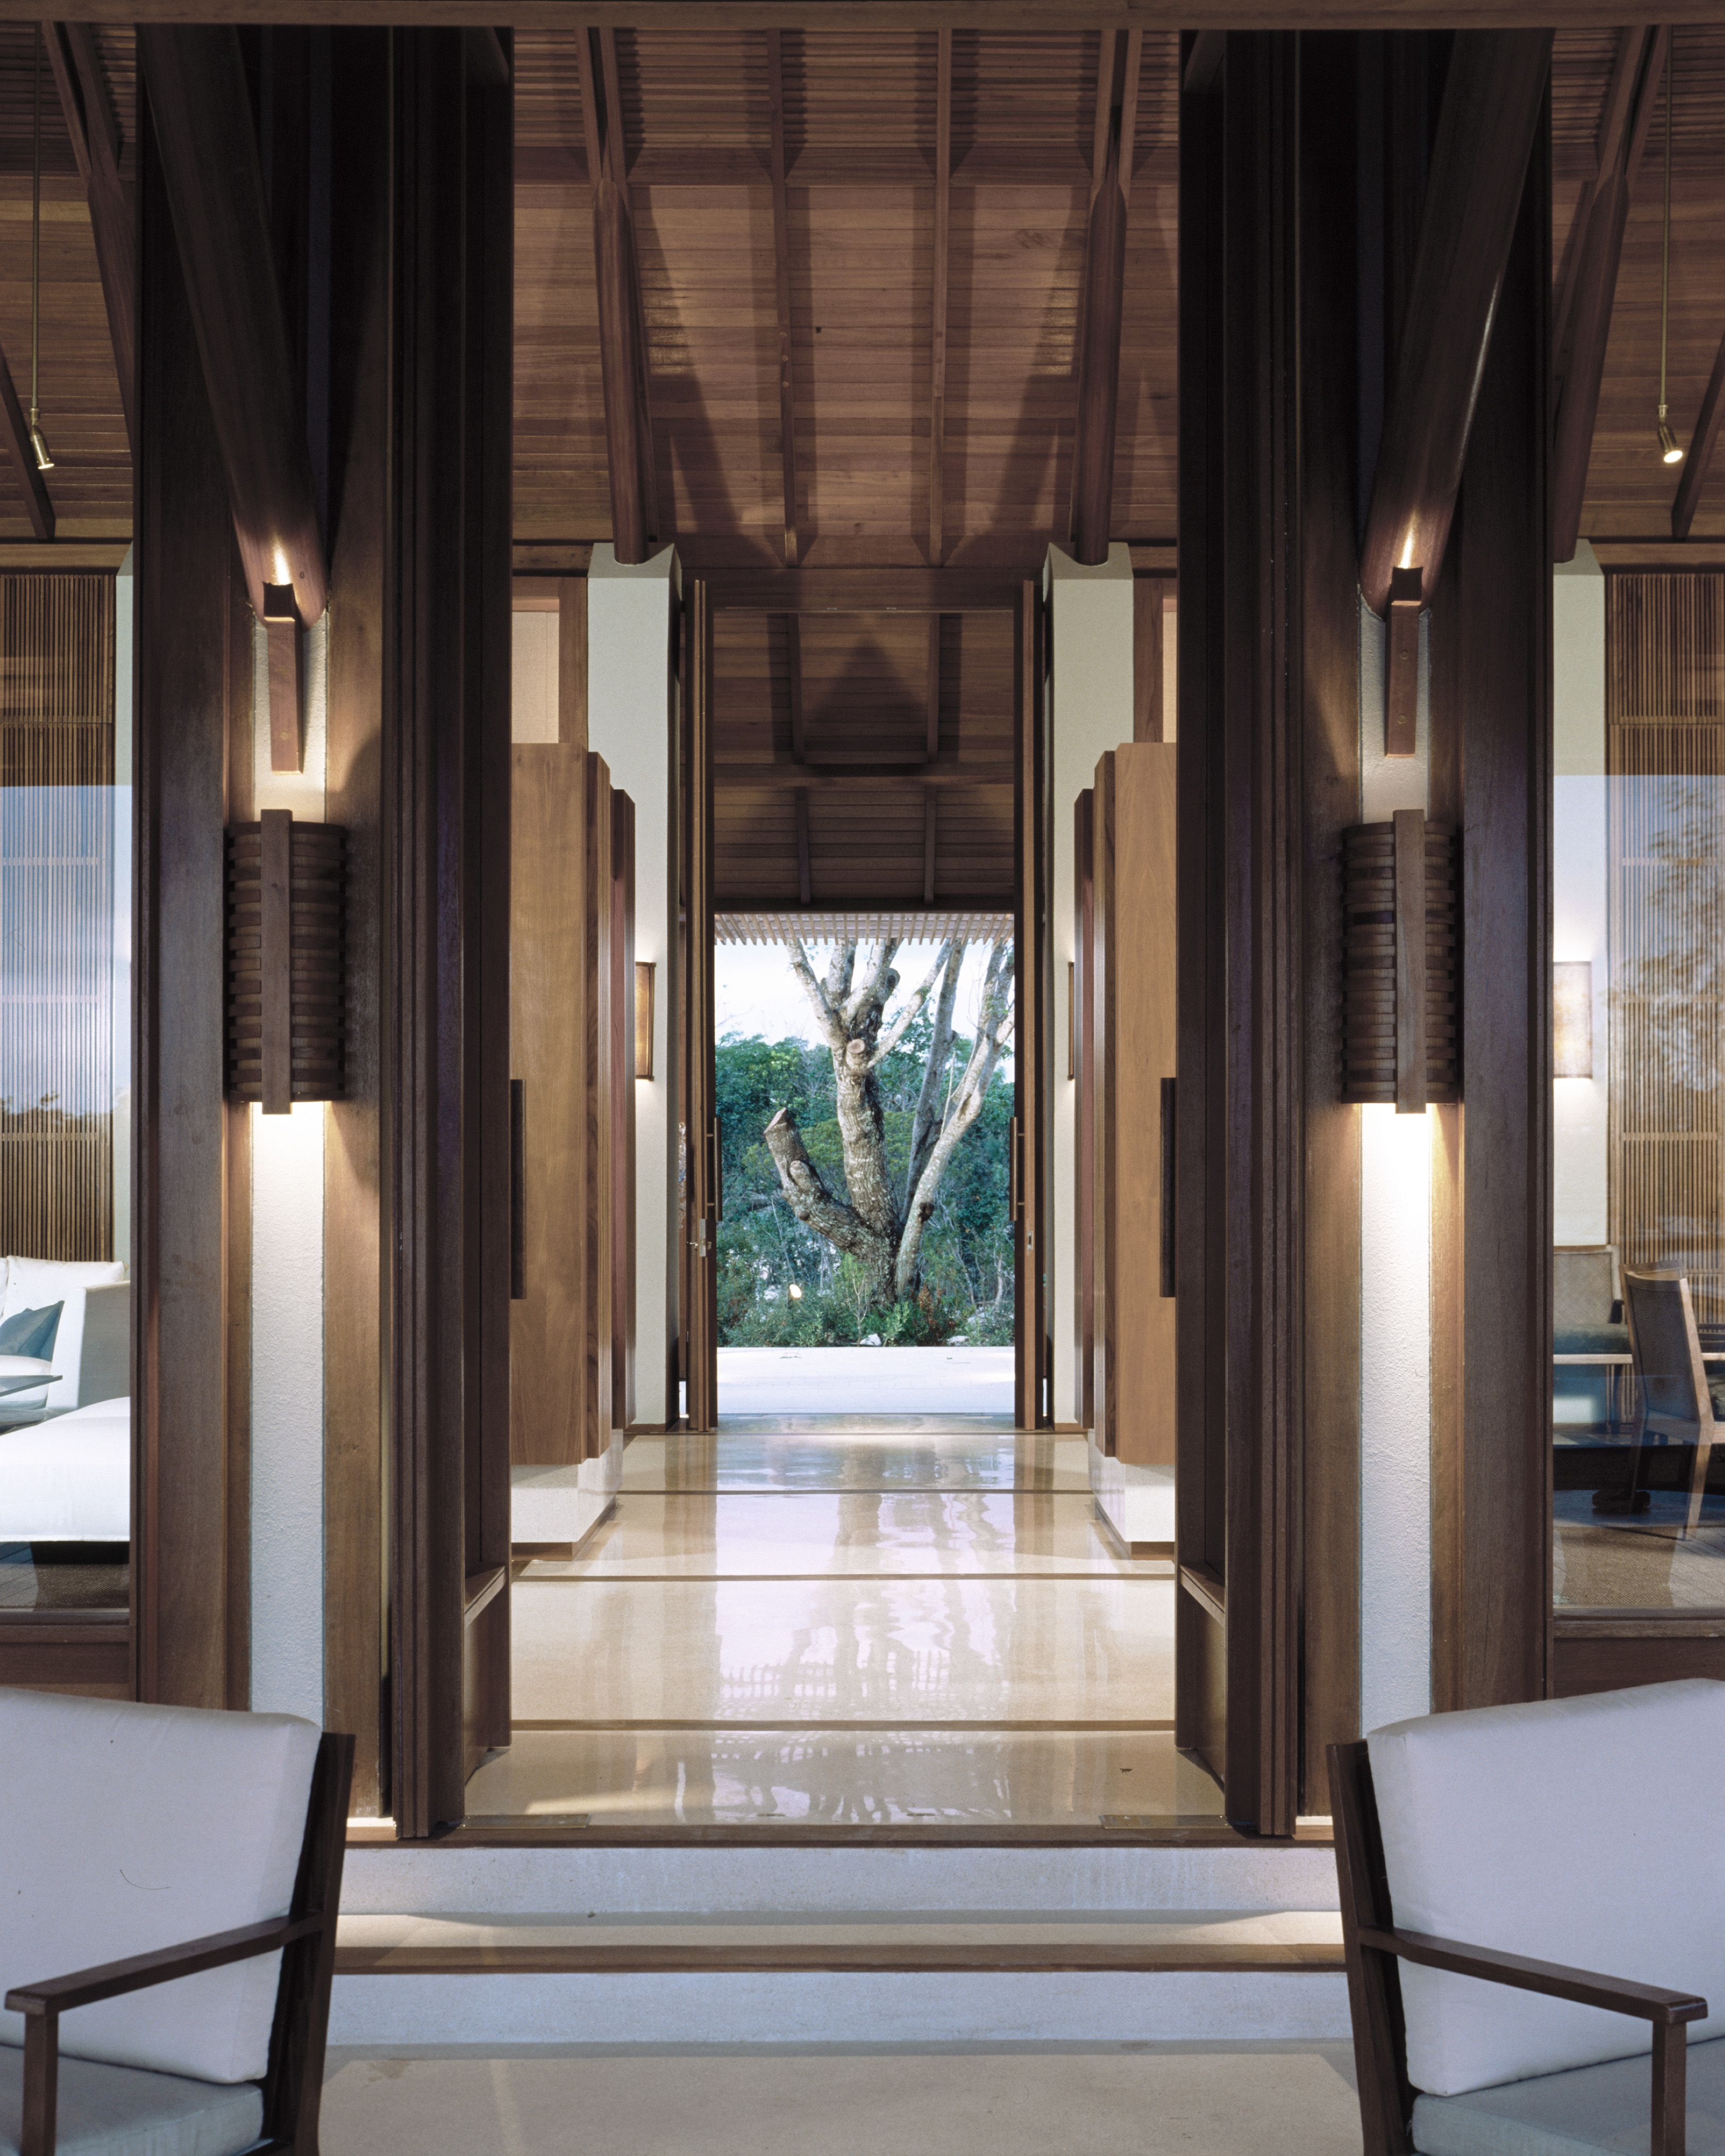 Modern Chinese Interior Design: Amanyara Resort On Providenciales In The Turks And Caicos